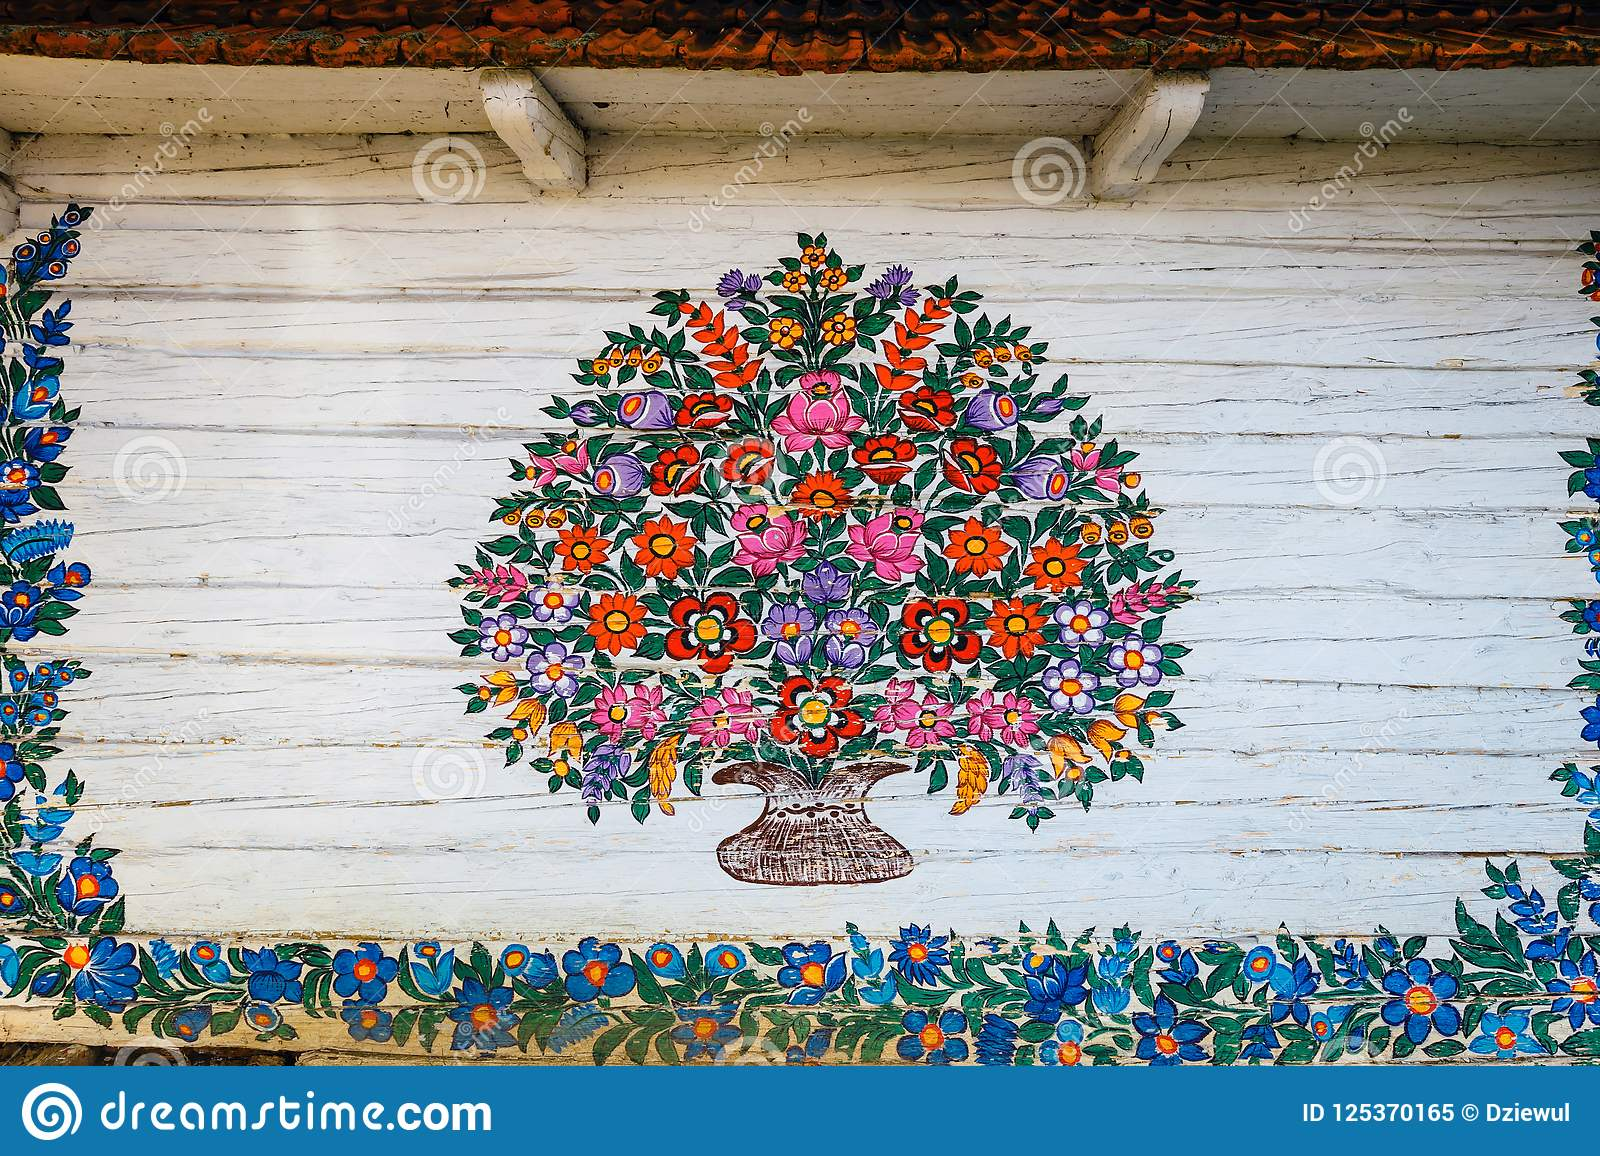 Zalipie, Poland, August 19, 2018: Close up of colorful flowers painted on wooden cottage in Zalipie, Poland. It is known for a lo